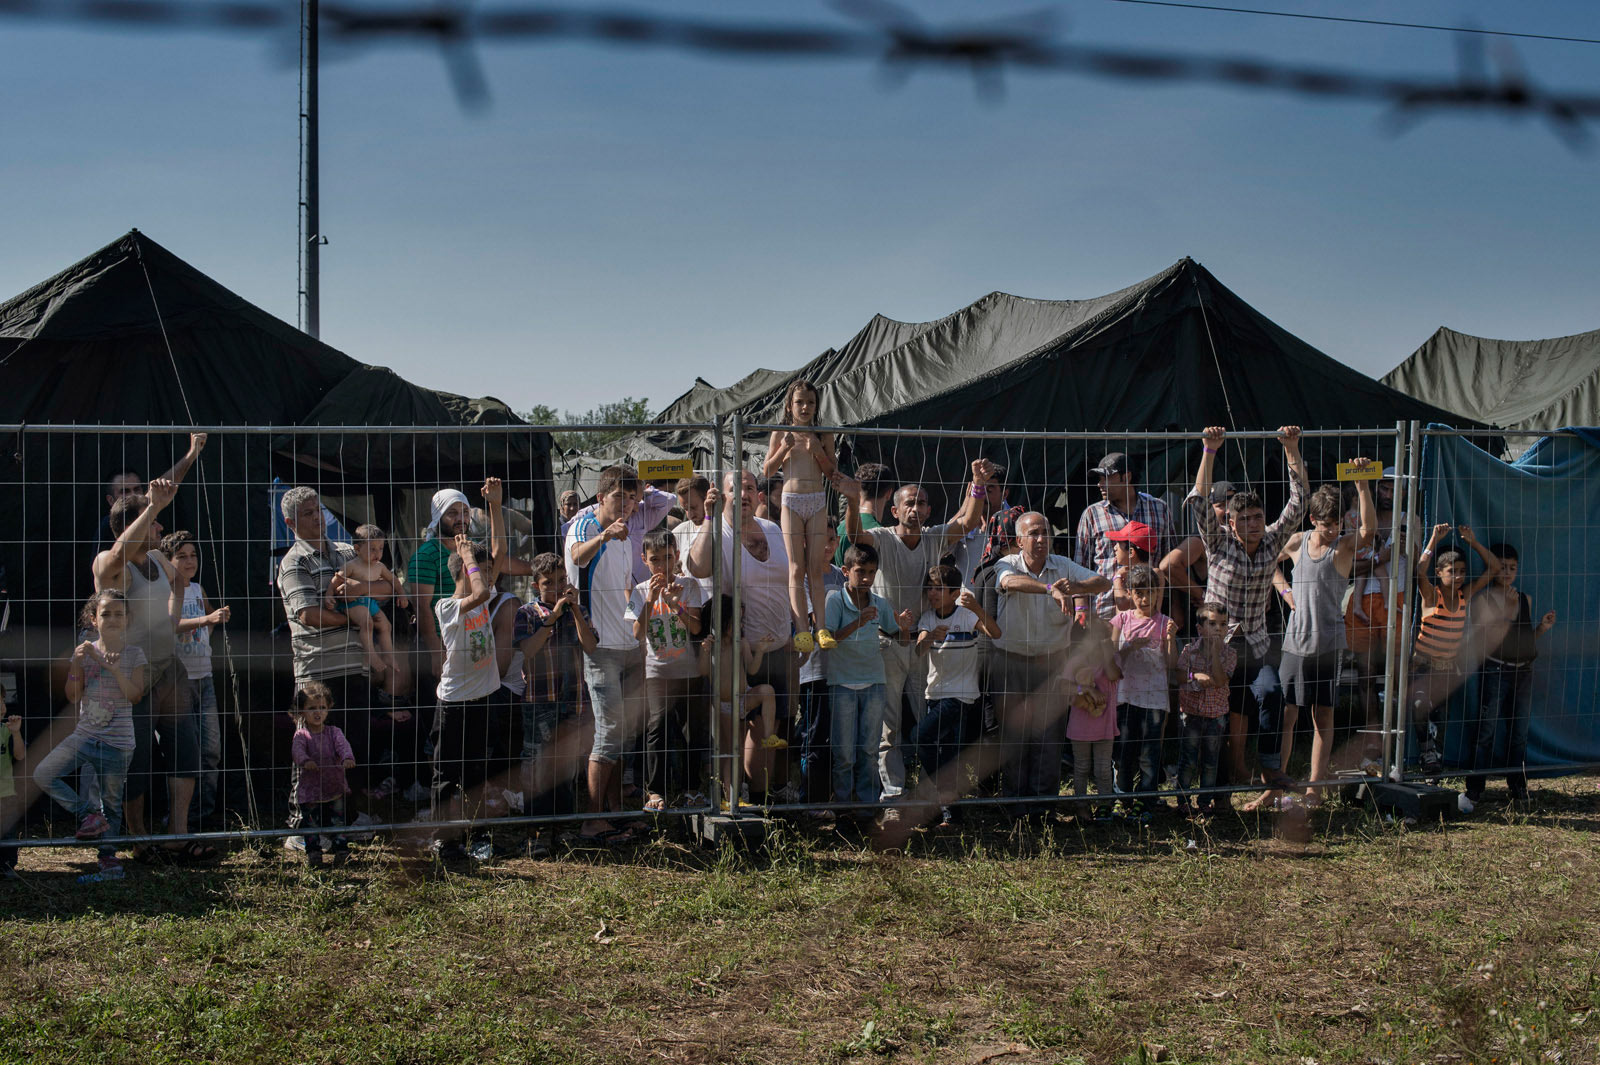 TIME LightBox: The Resilience of Thousands of Refugees on Their Way to EuropeA group of migrants waits at a makeshift detention camp for Hungarian authorities to register their arrival in the European Union. Roszke, Hungary, on Aug. 29, 2015.